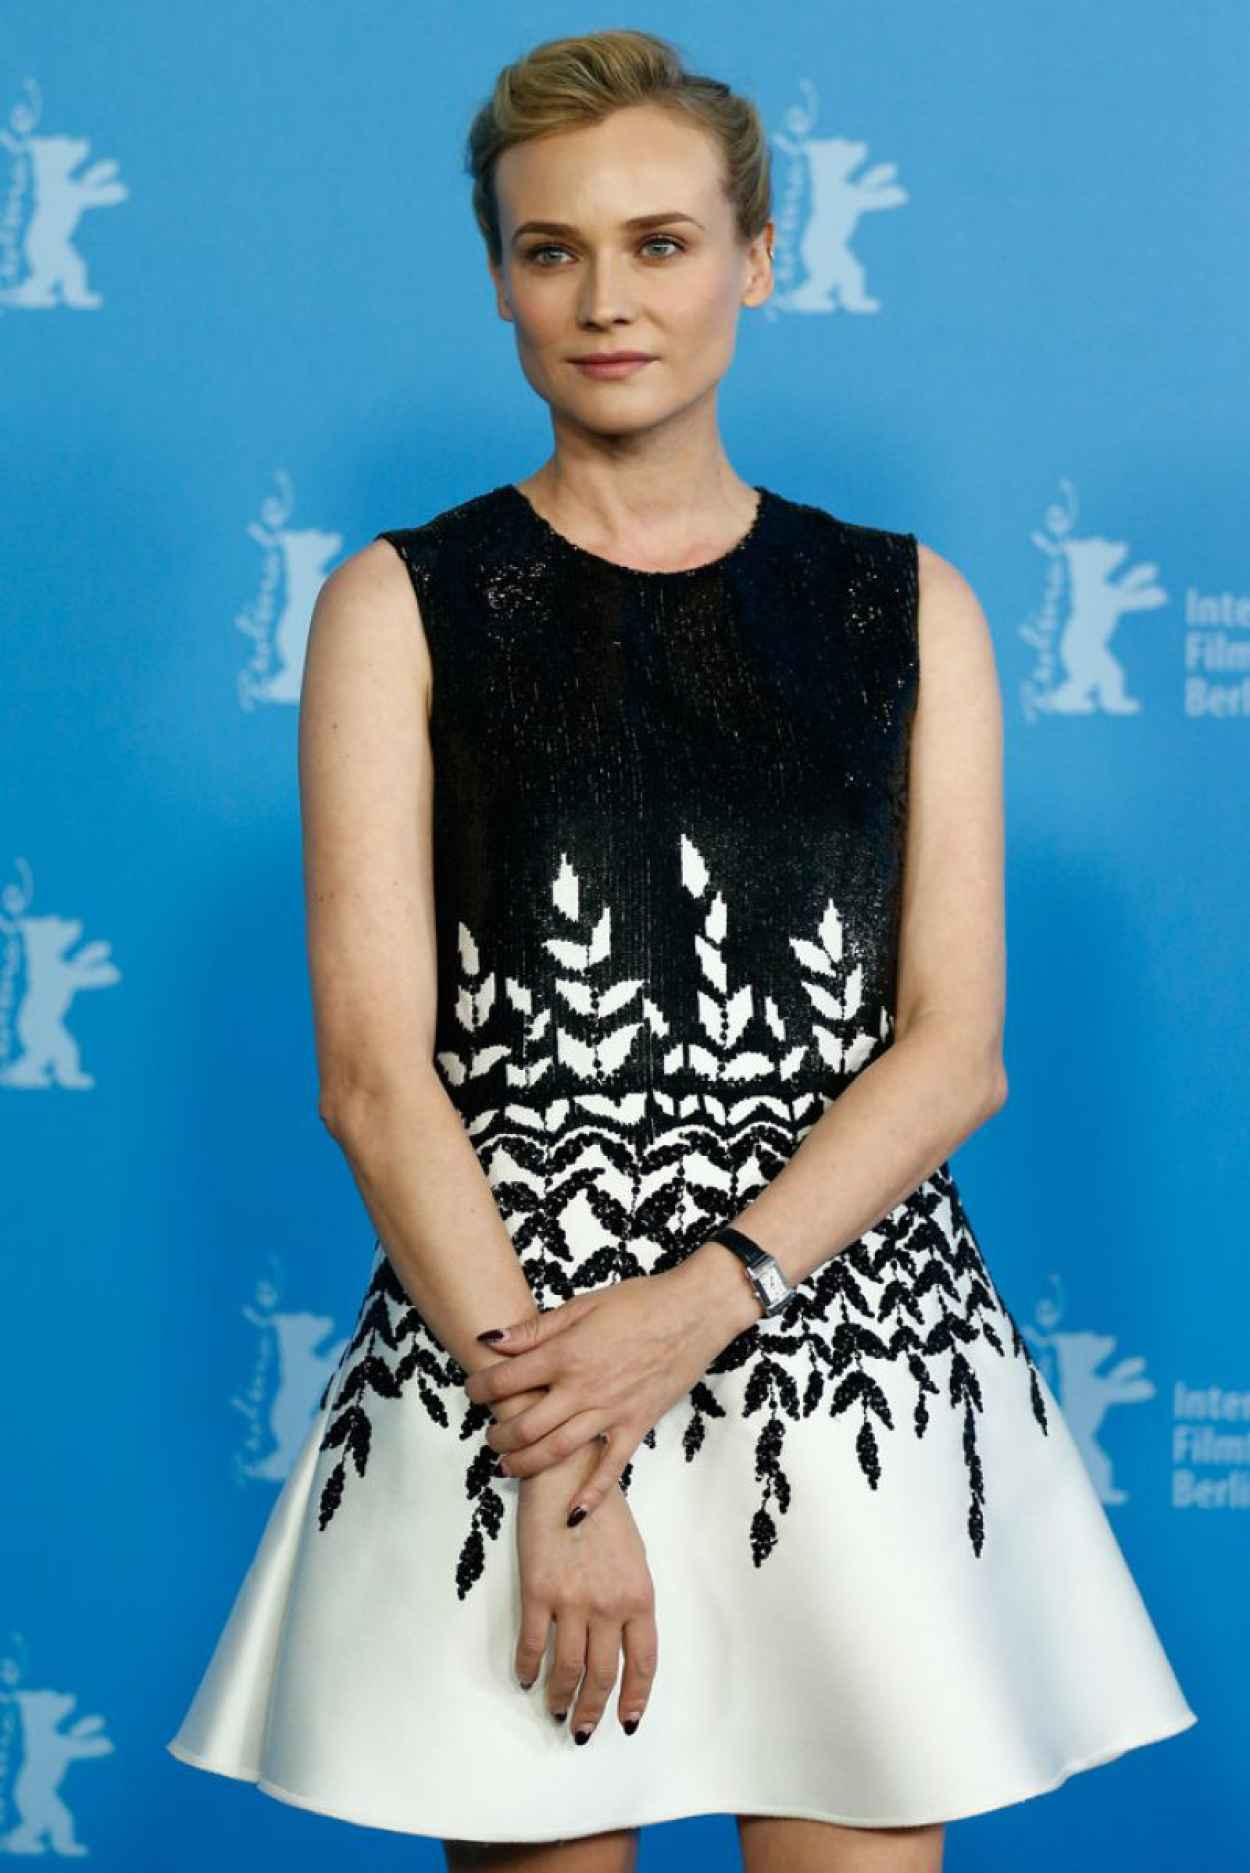 Diane Kruger - THE BETTER ANGELS Photocall in Berlin, February 2015-1